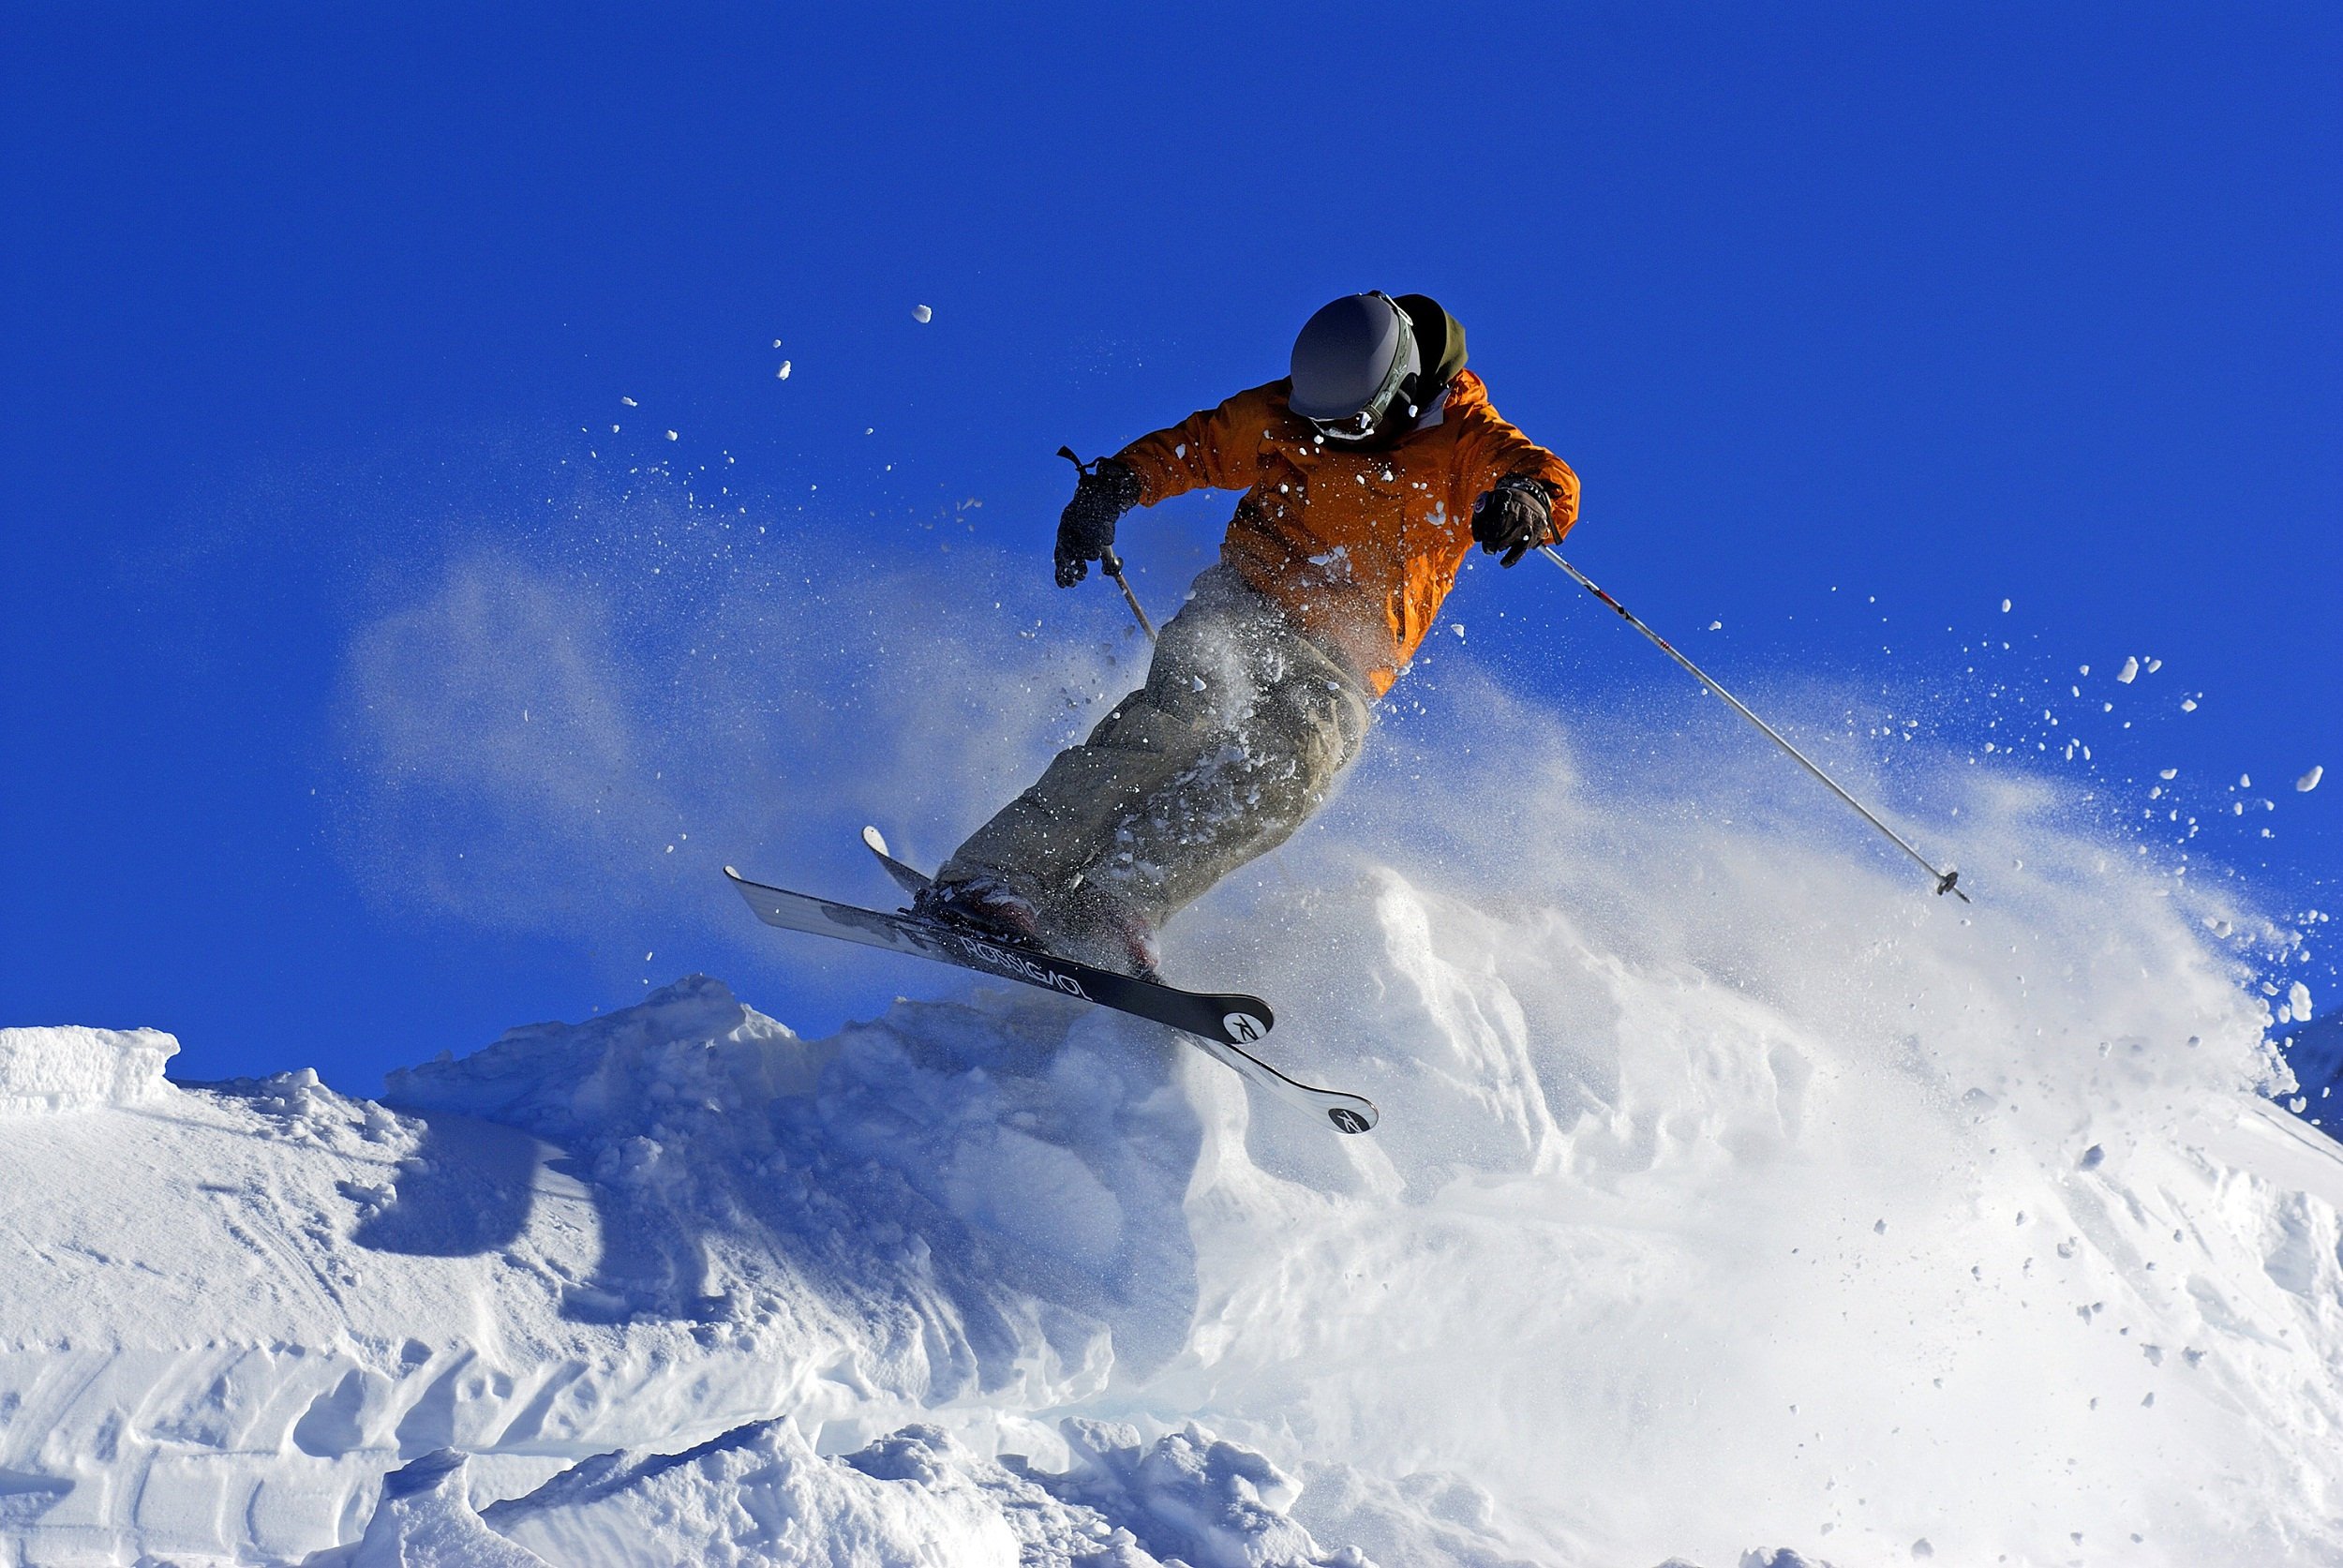 Stunt Wallpaper Hd Printable Pictures Of Skiers Activity Shelter